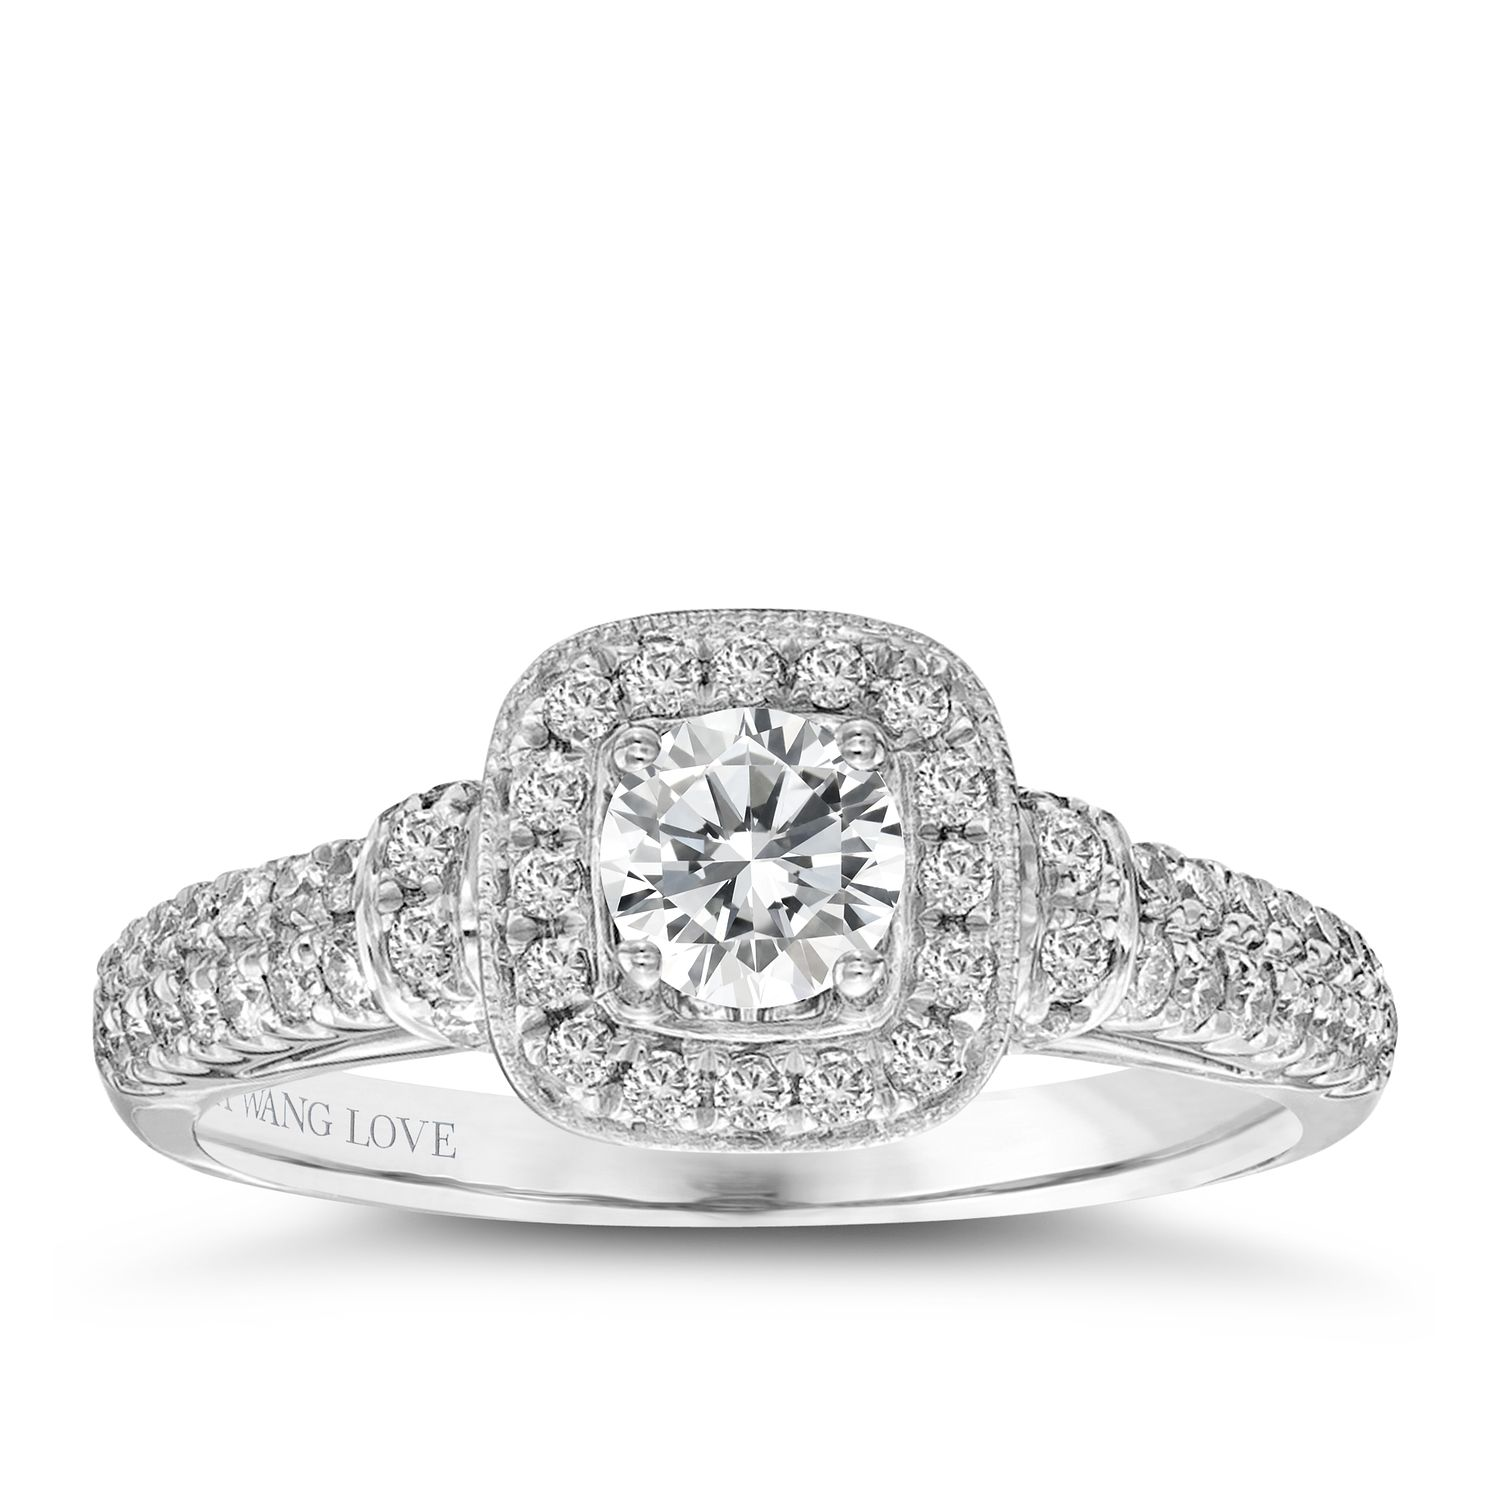 past wang beauty moments this incomparable present white s the life n rings unmatched w engagement quality collections captivating celebrating since special vera collection love and gold ring offers mazzucchelli from your t